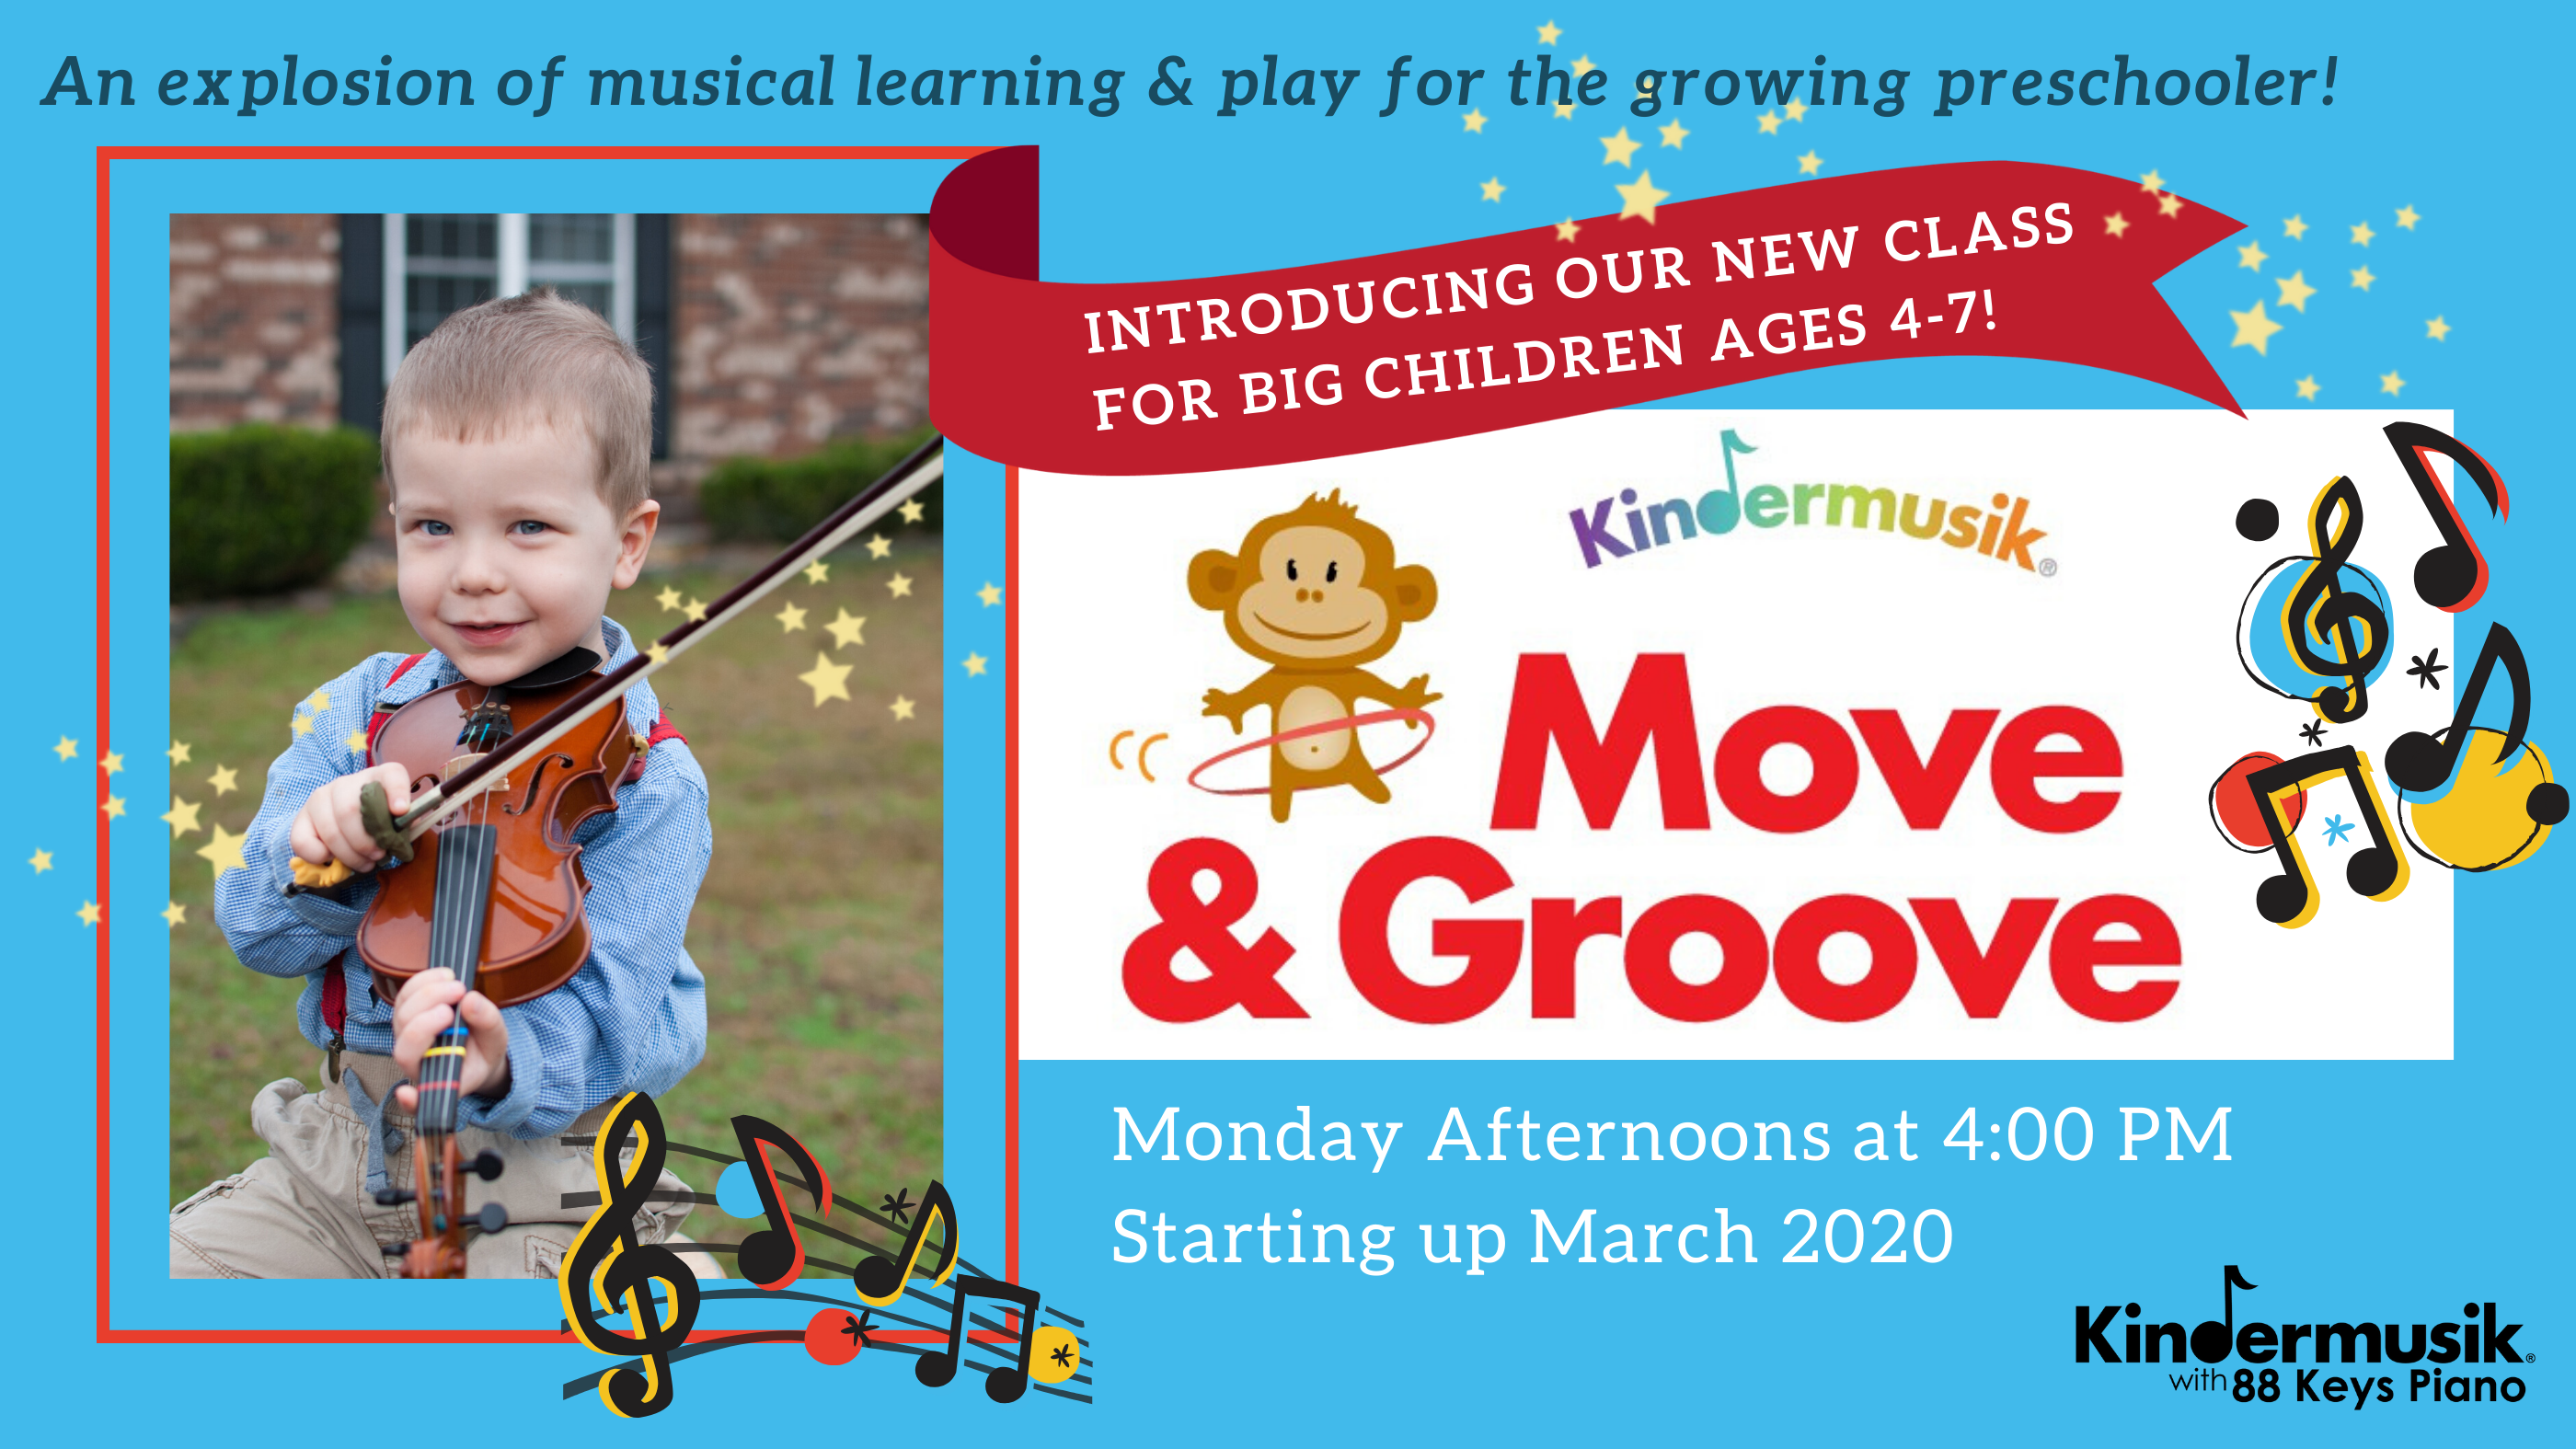 Introducing Our New Class for BIG CHILDREN Ages 4-7: Starting March 2020!